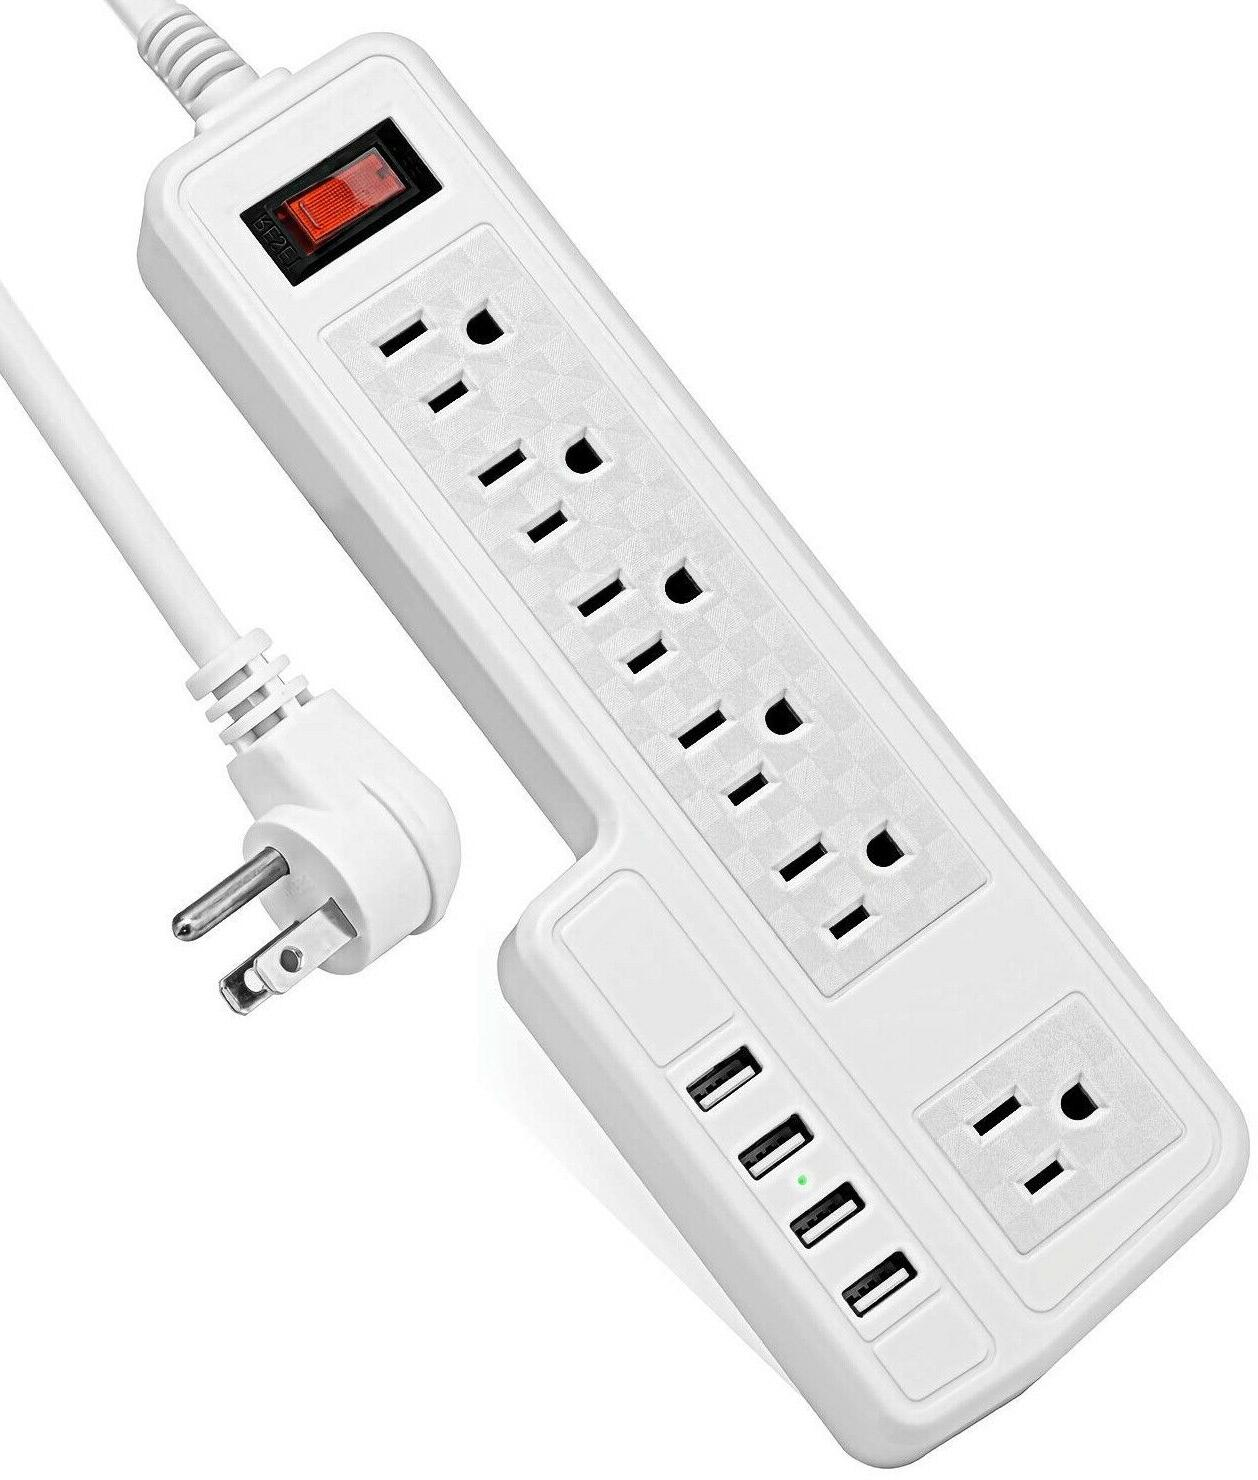 mountable surge protector power strip 9 8ft